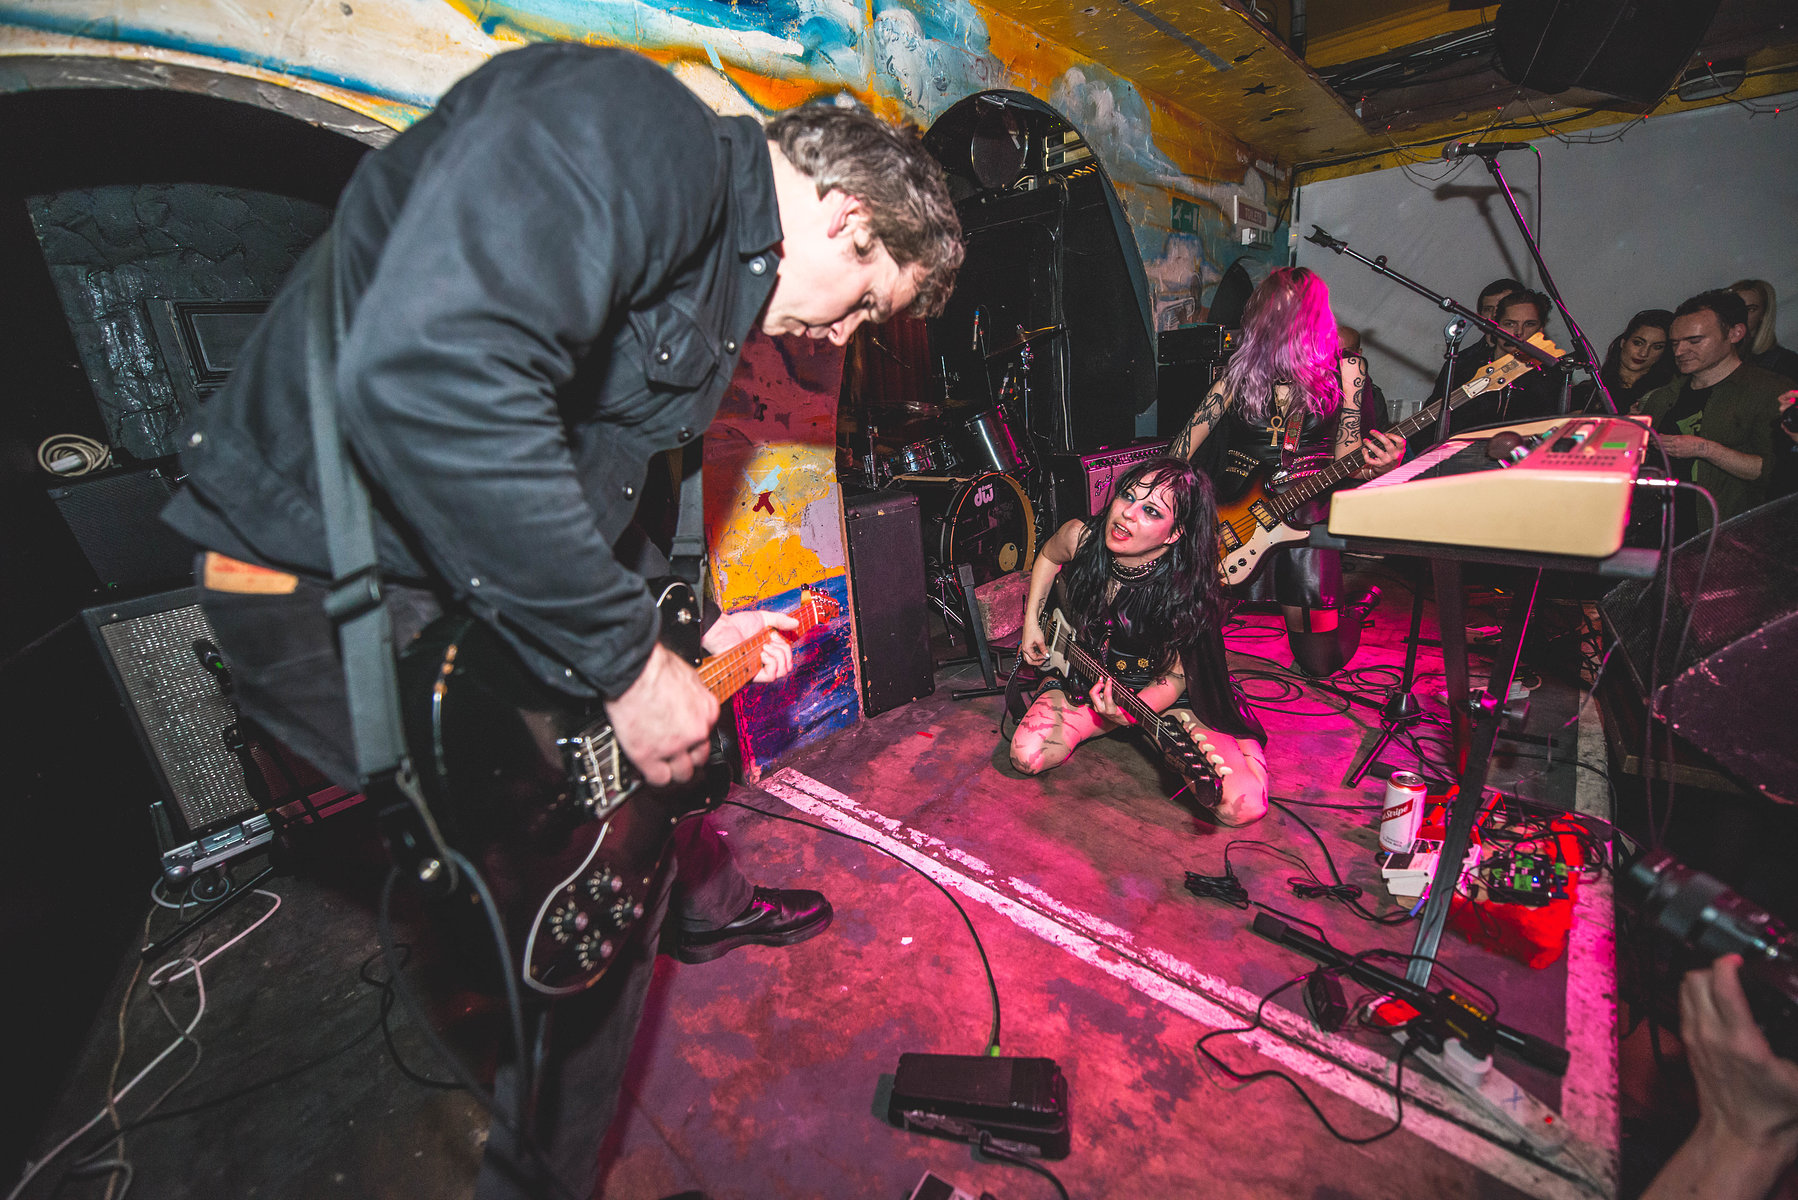 Death Valley Girls at the Shacklewell Arms for Bad Vibrations on February 3rd, 2017